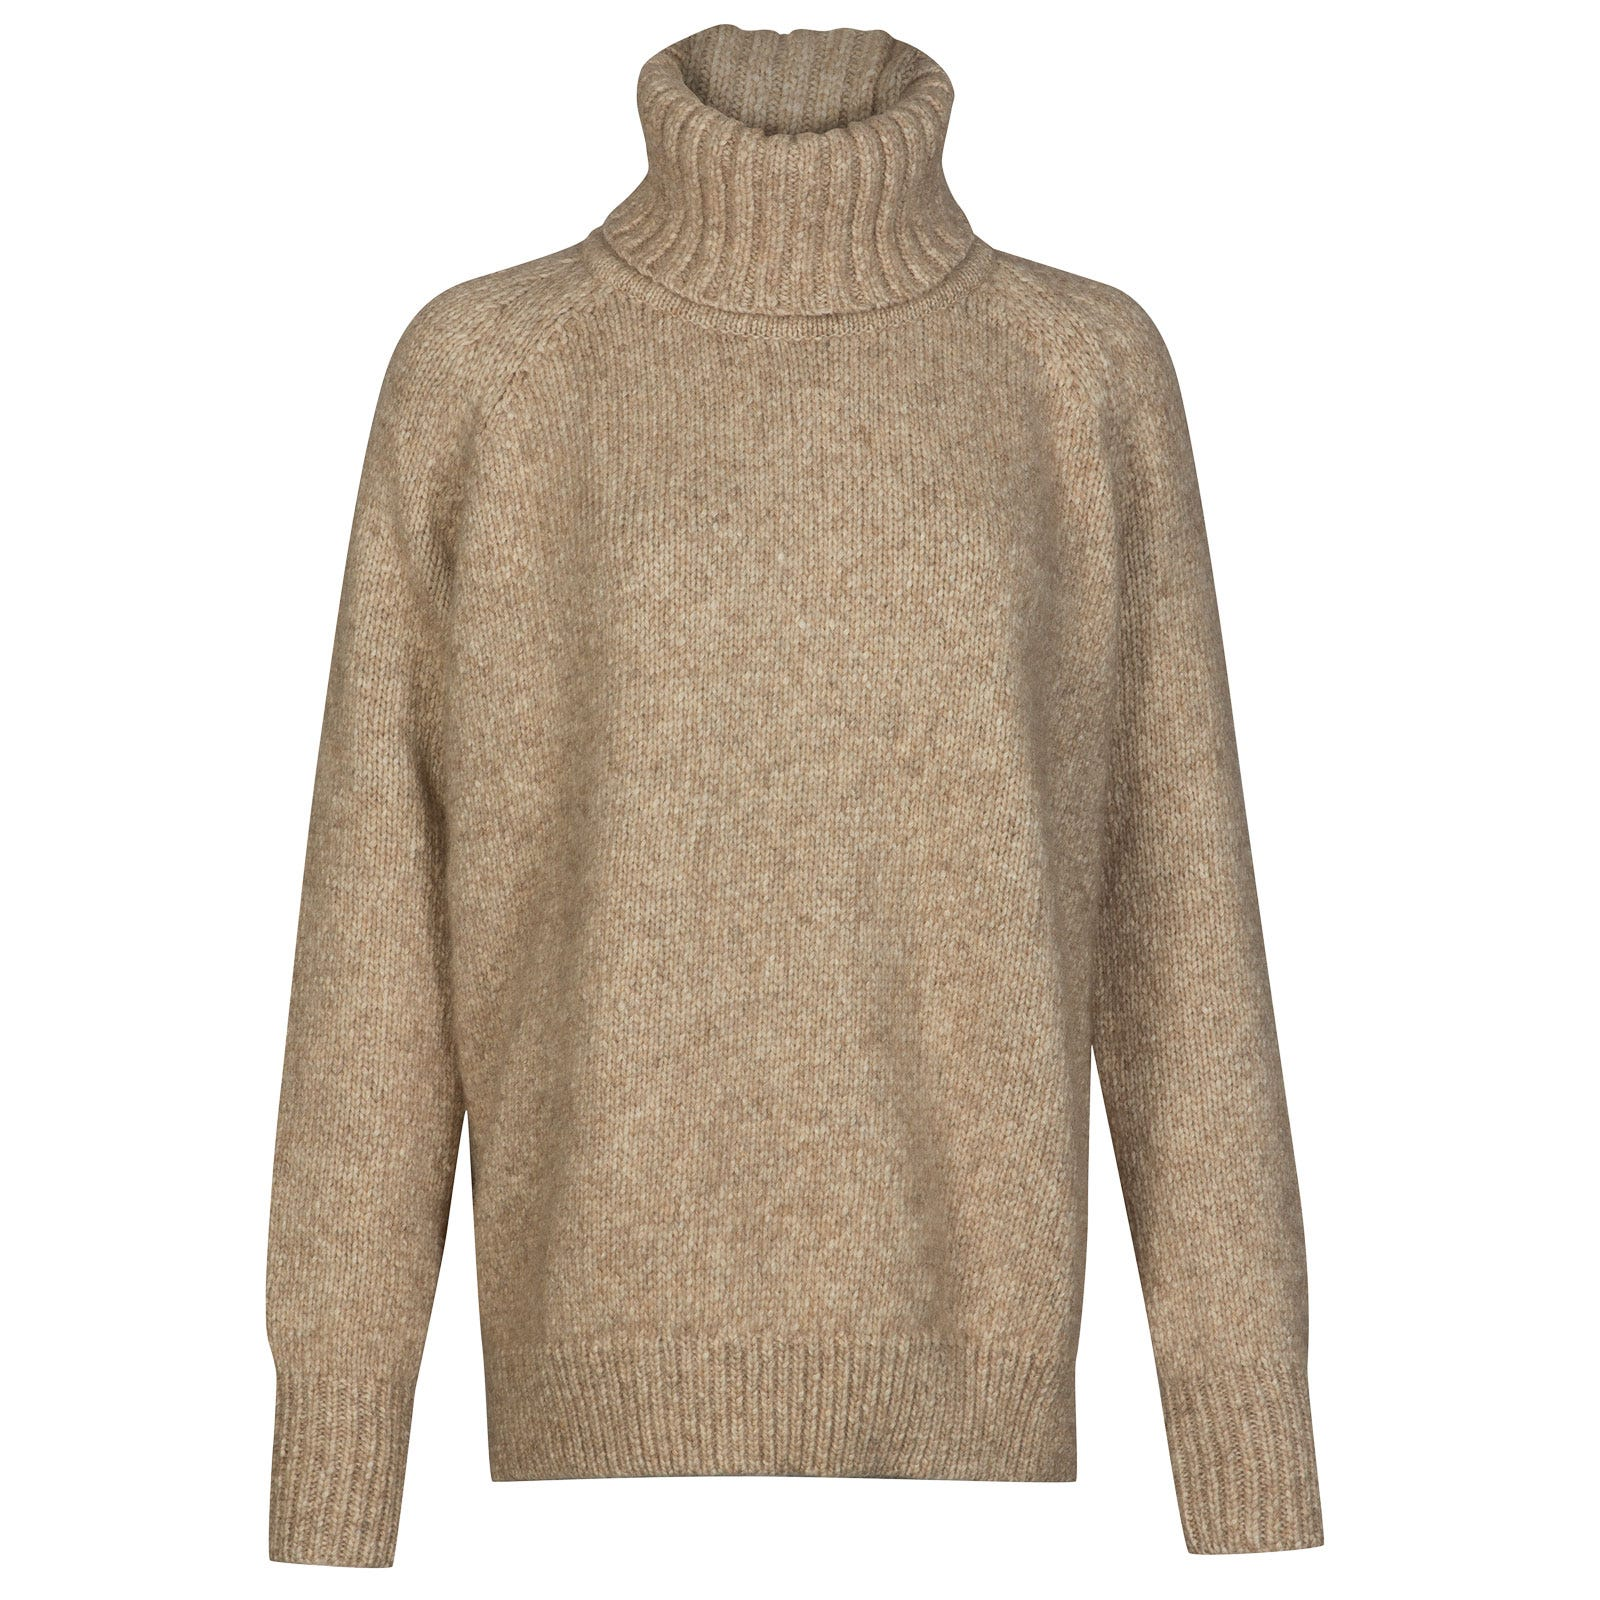 John Smedley Morar Alpaca, Wool & Cotton Sweater in Camel-M